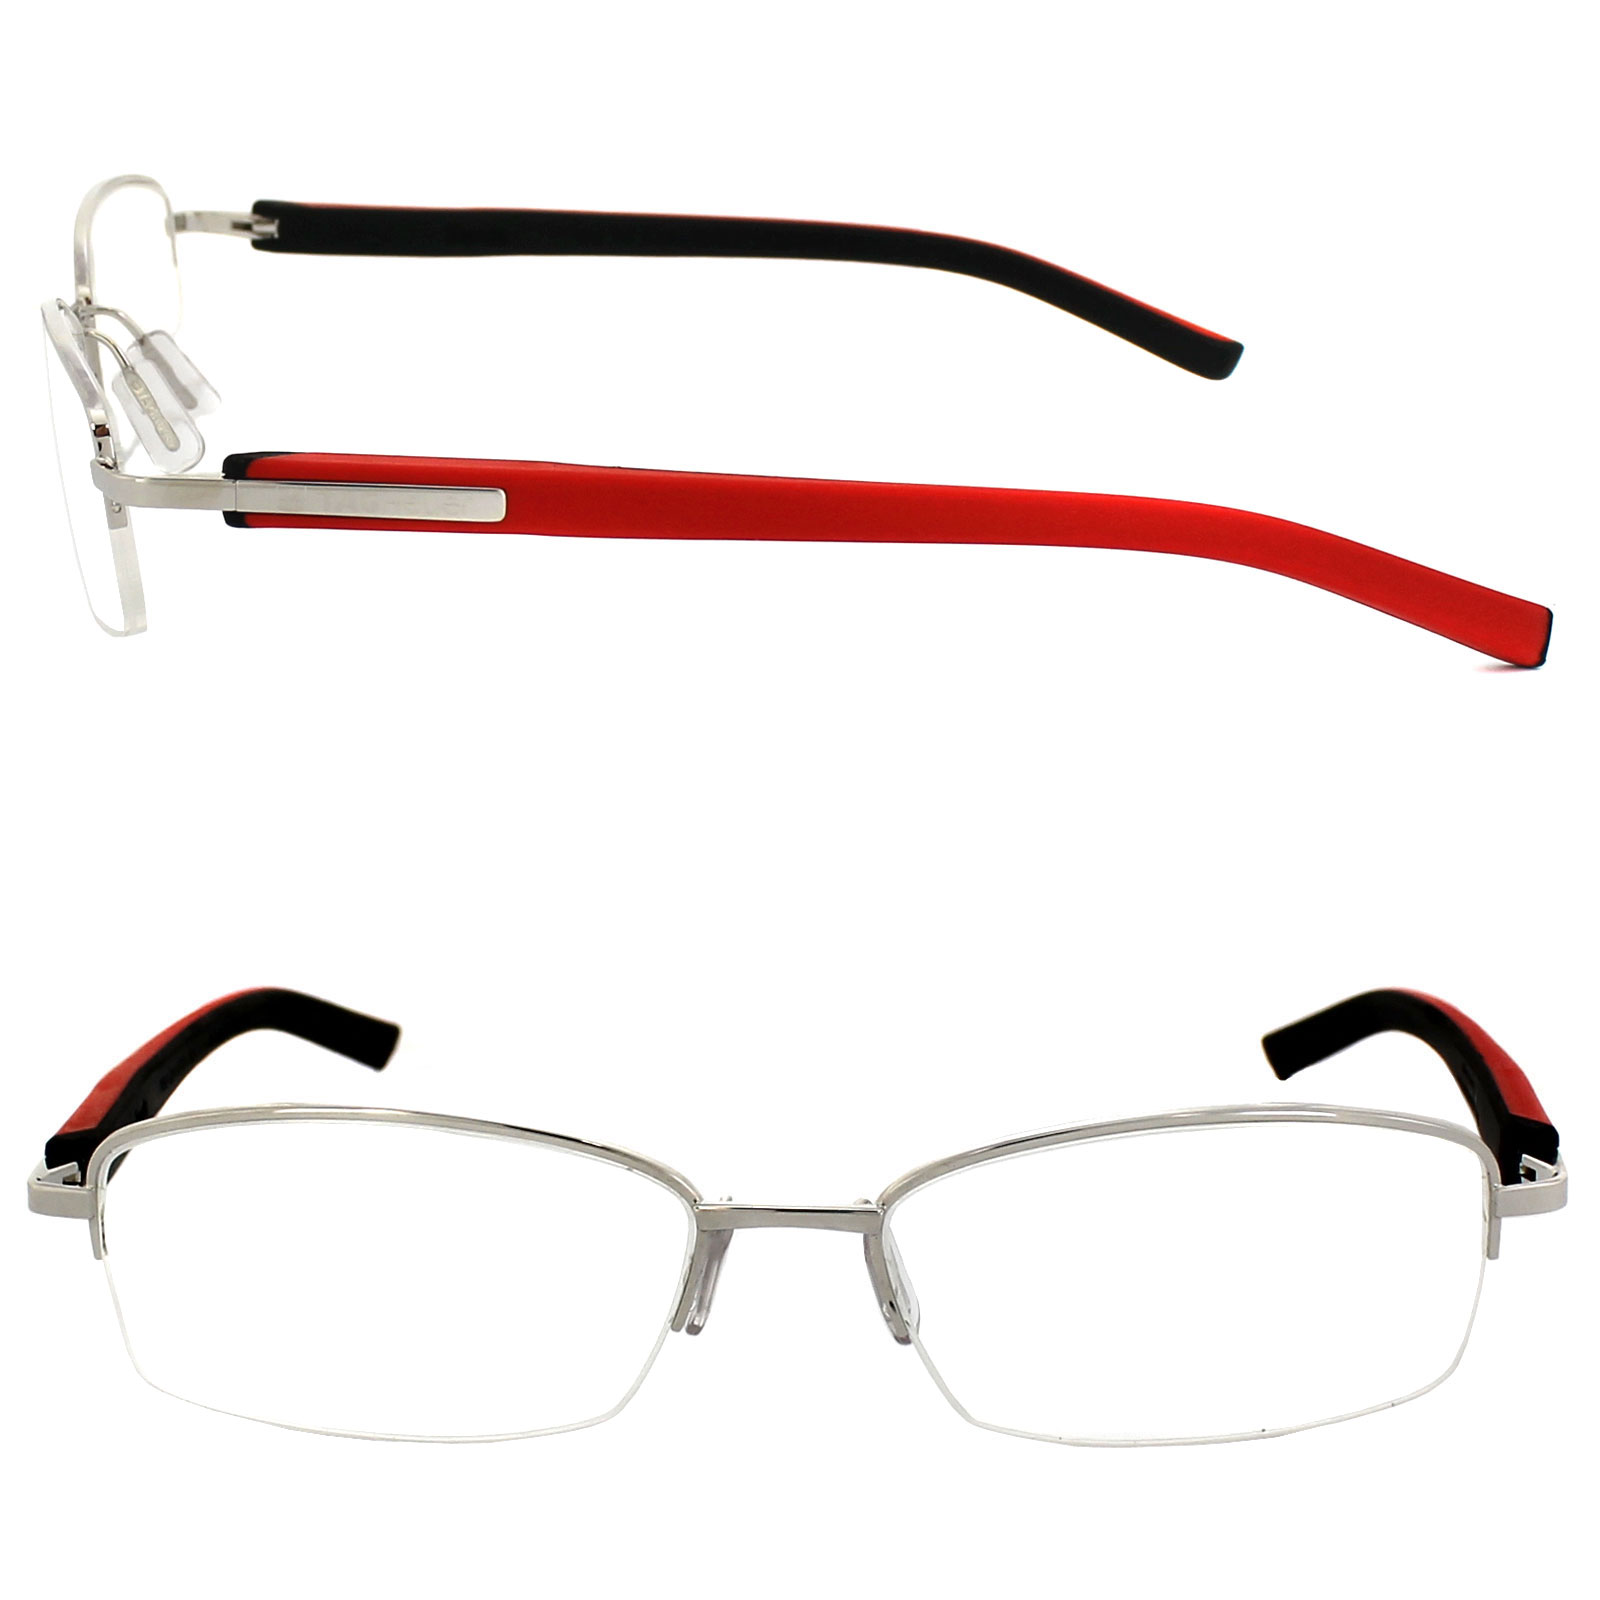 Cheap Tag Heuer Glasses Frames Trends 8210 005 Silver ...